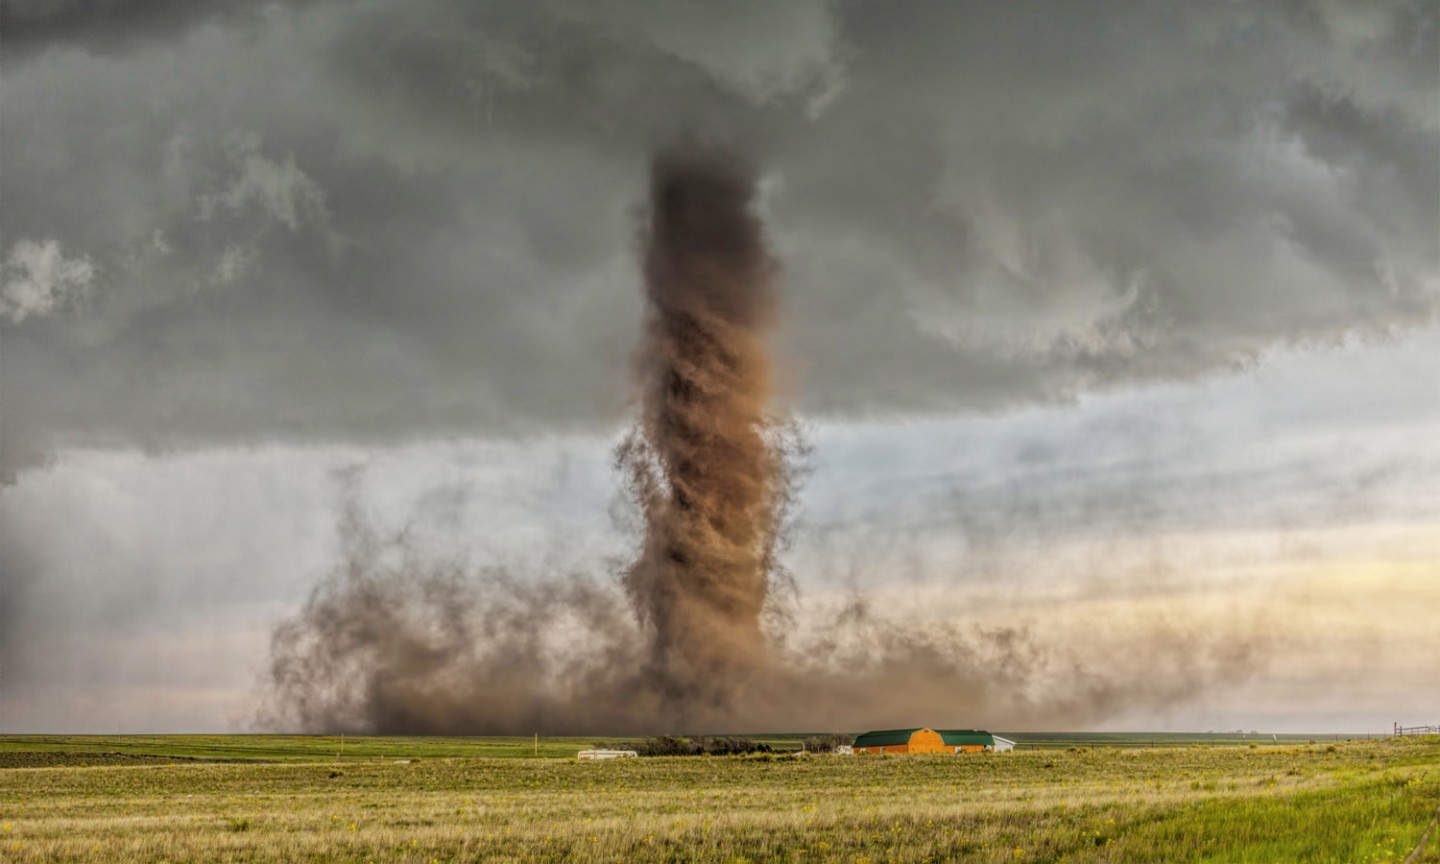 """Australia's James Smart found himself in Colorado as this """"drill bit"""" tornado touched down, ripping up soil to give it an earthy color"""